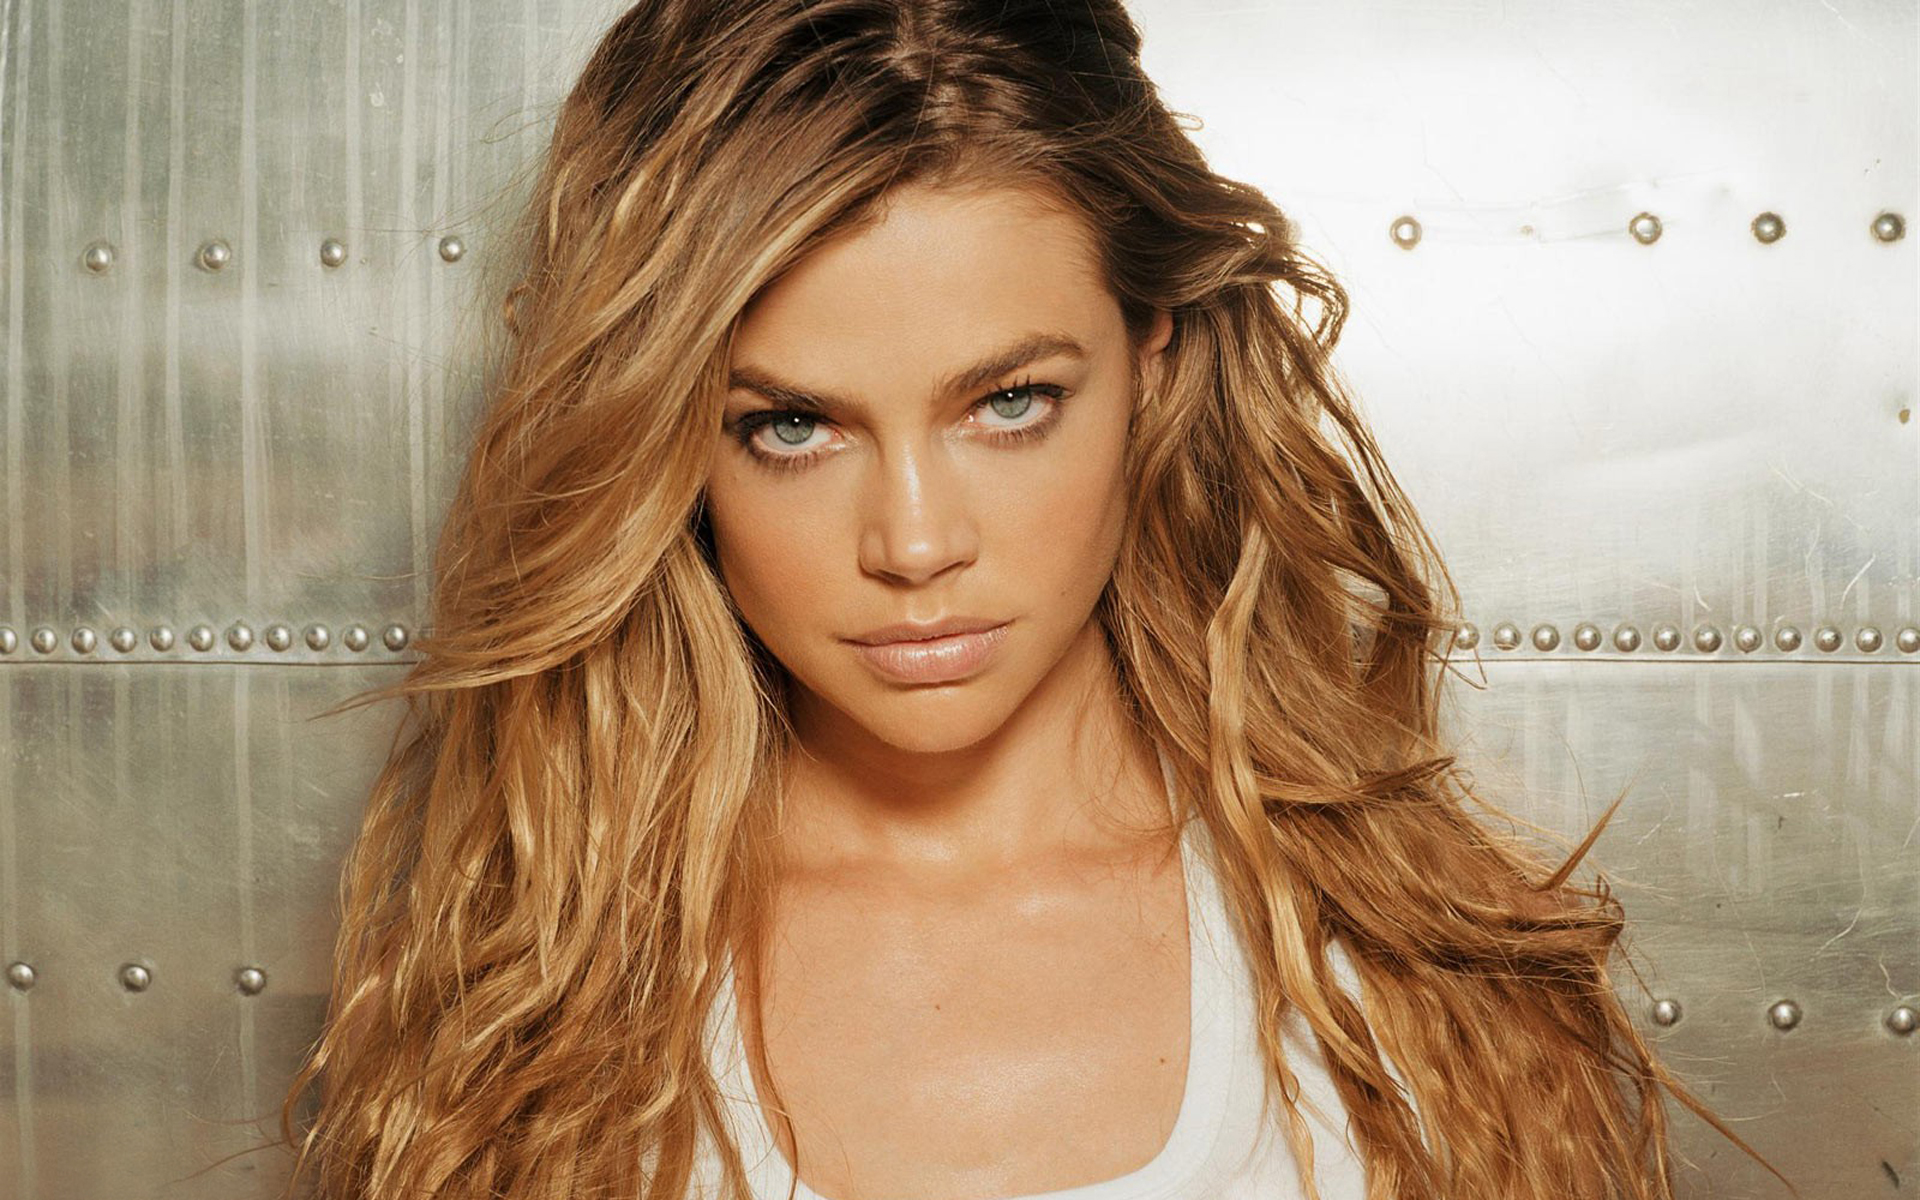 denise richards 1920x1200 wallpapers - photo #14